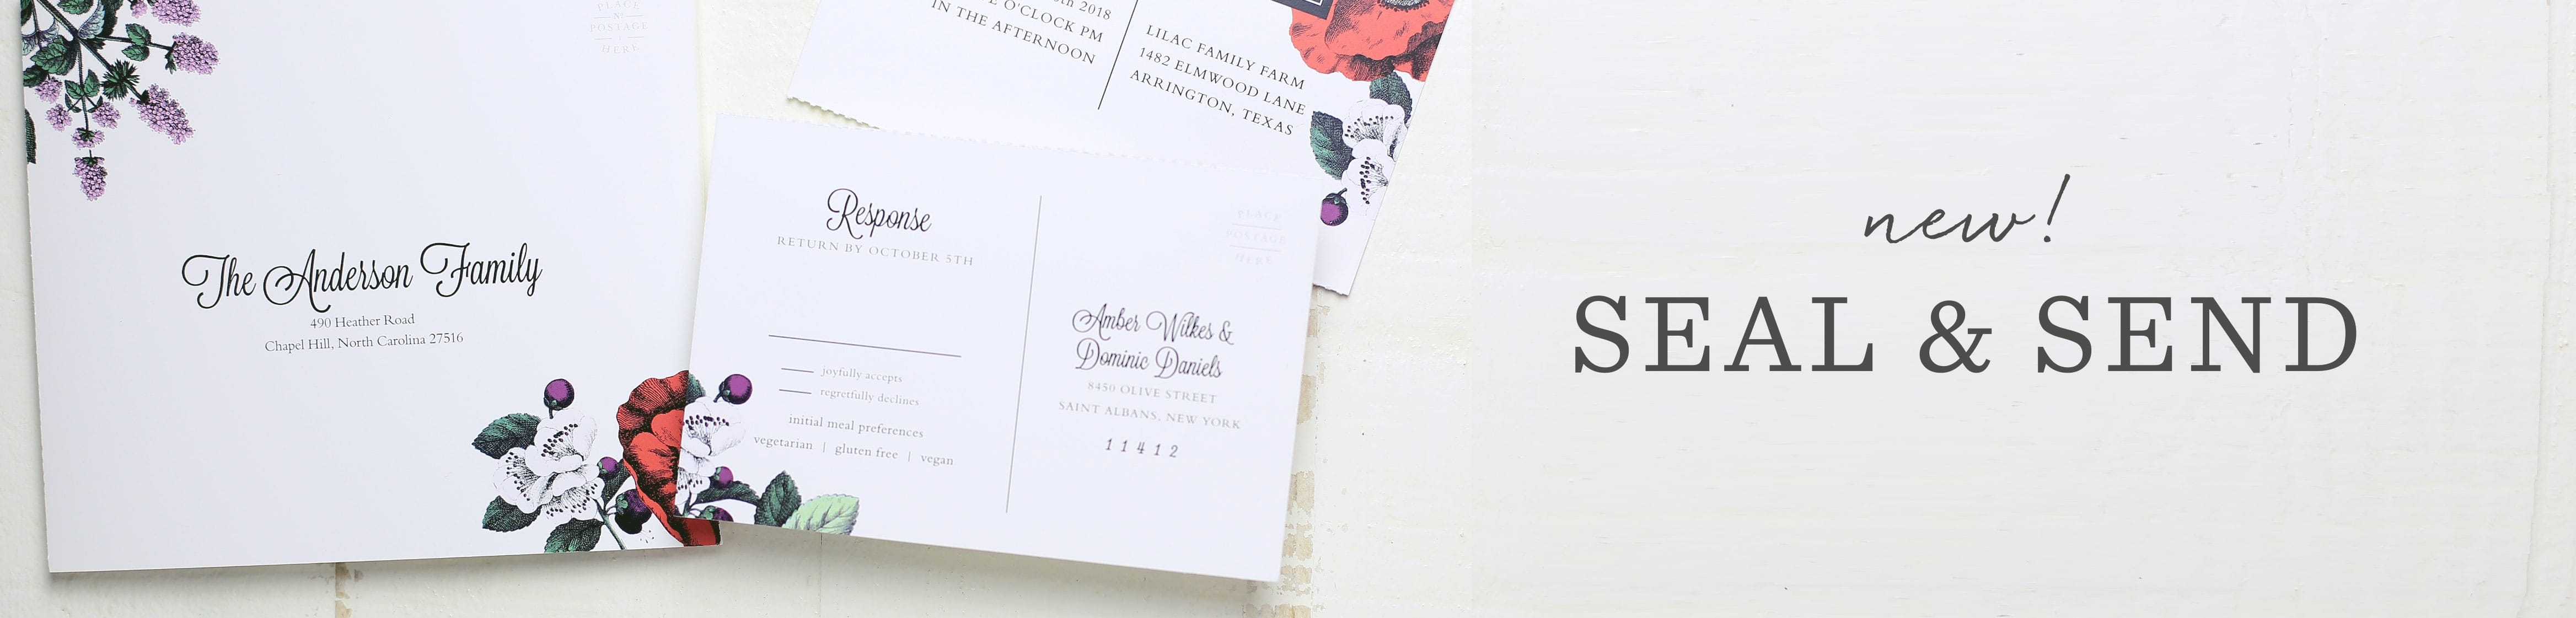 wedding invitations and reply cards